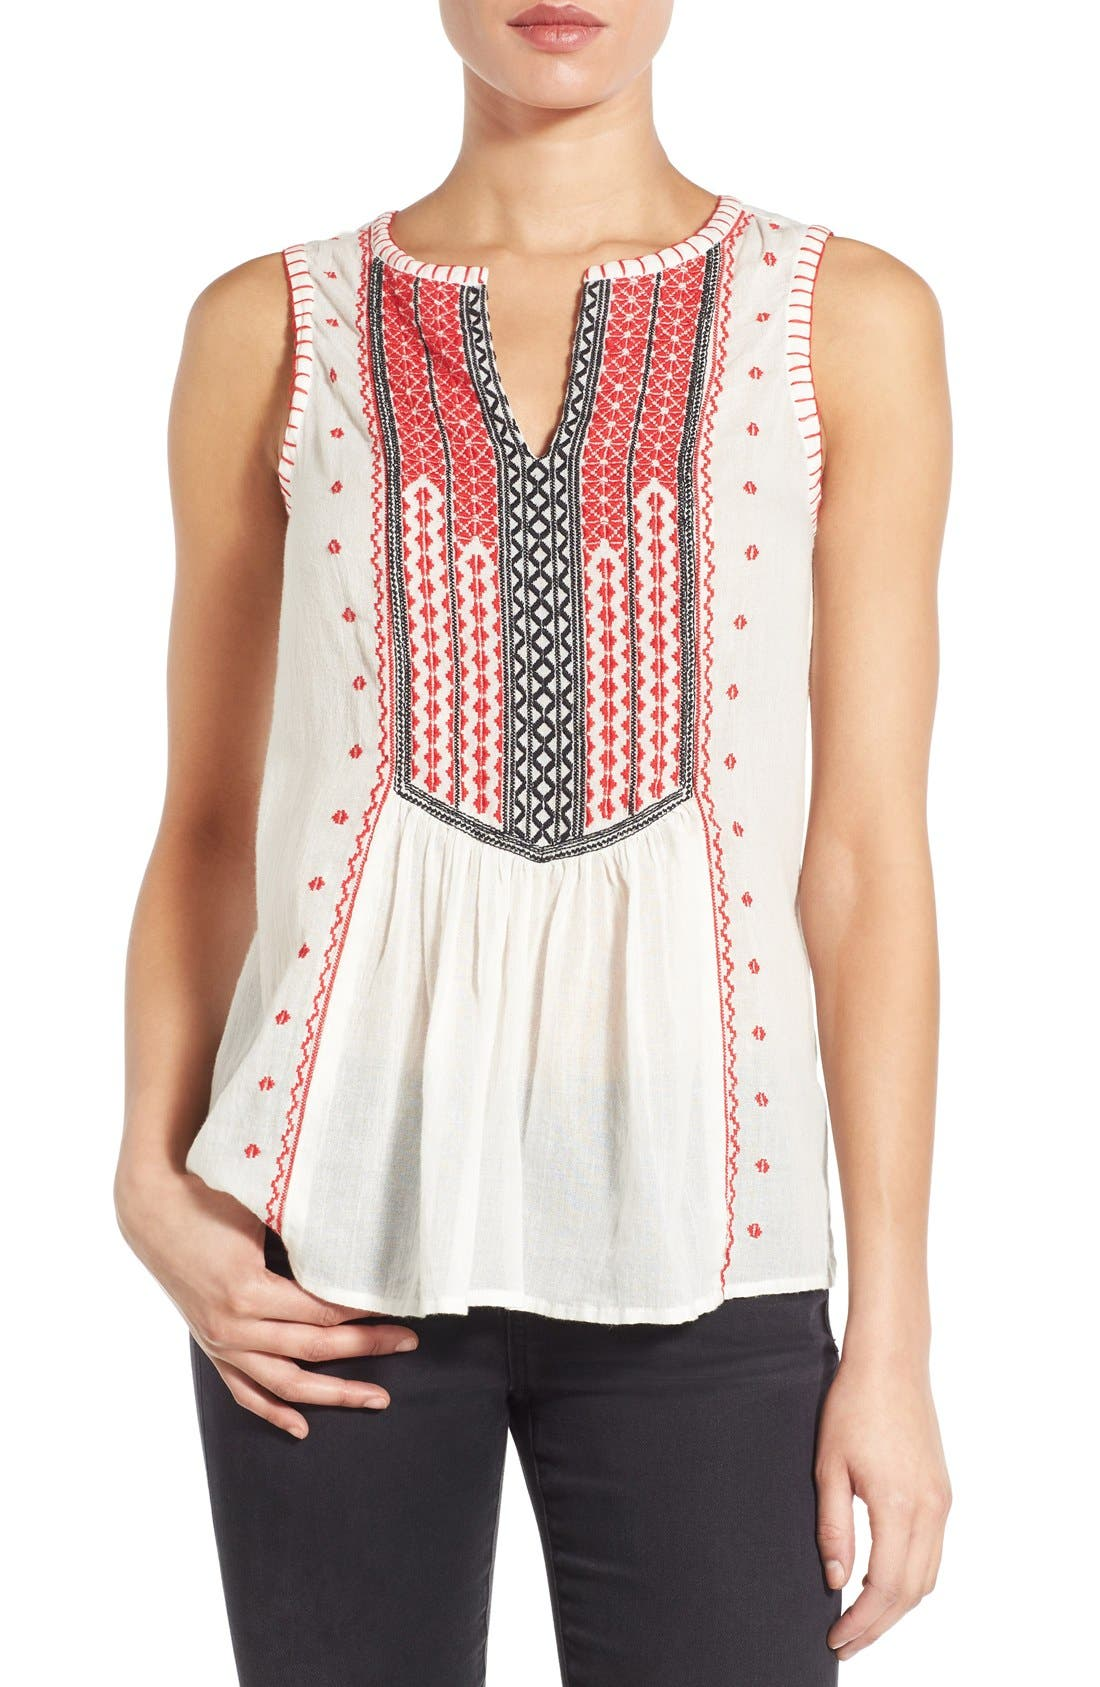 Main Image - Lucky Brand Embroidered Bib Cotton Tank